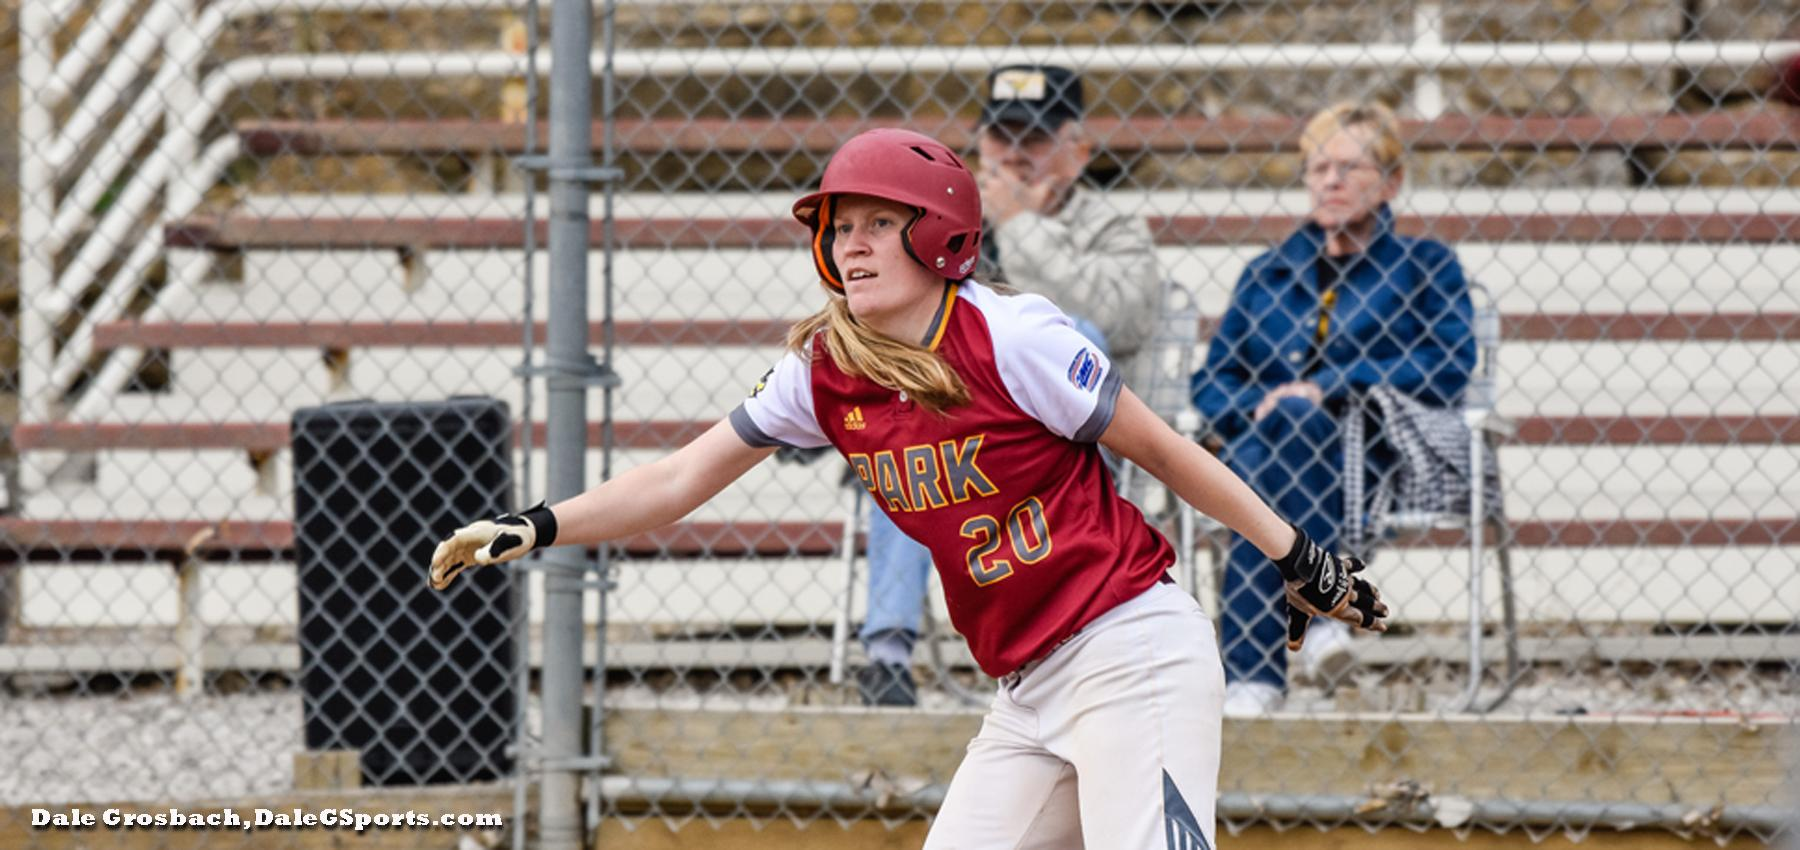 The Pirates' Hailey Costello hit a homerun in game one in the win over the Eutectics.